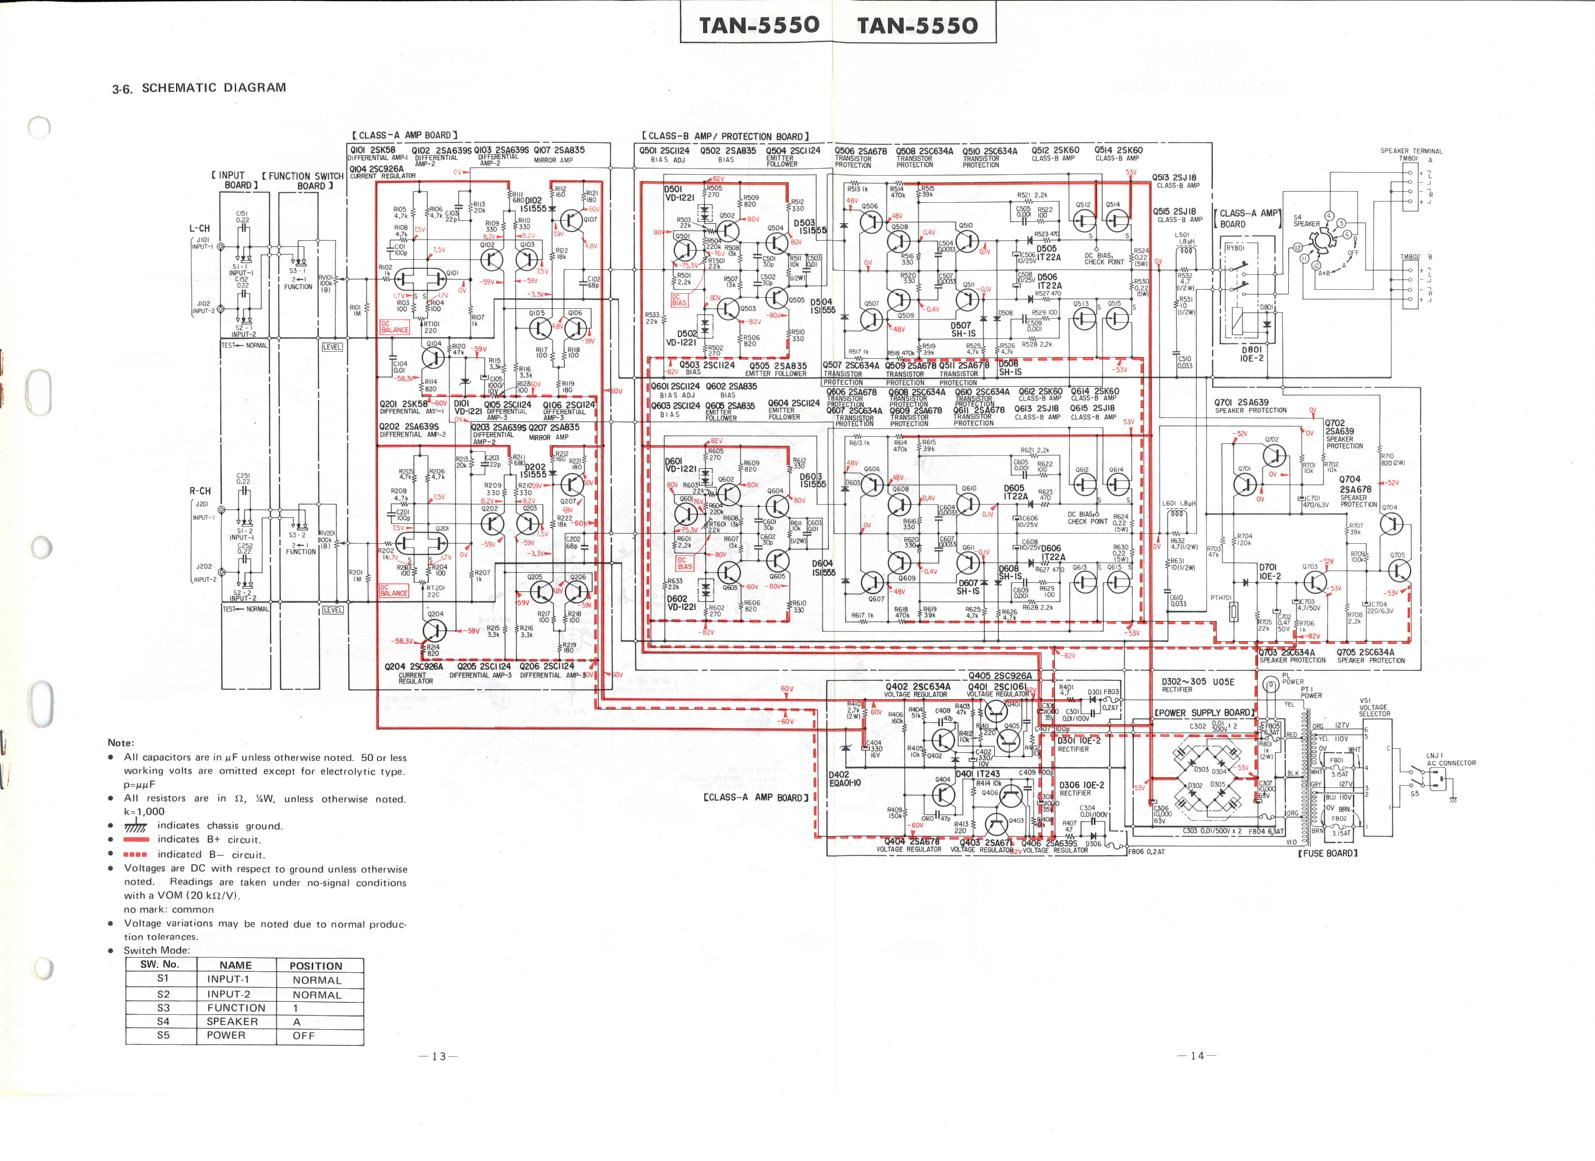 sony amp wiring diagram with Schemi Diy on 2778 Car Audio Lighting Wiring Diagram likewise Schemi diy in addition 121105113579 besides Kenwood Excelon Wiring Diagram additionally 390684740777.